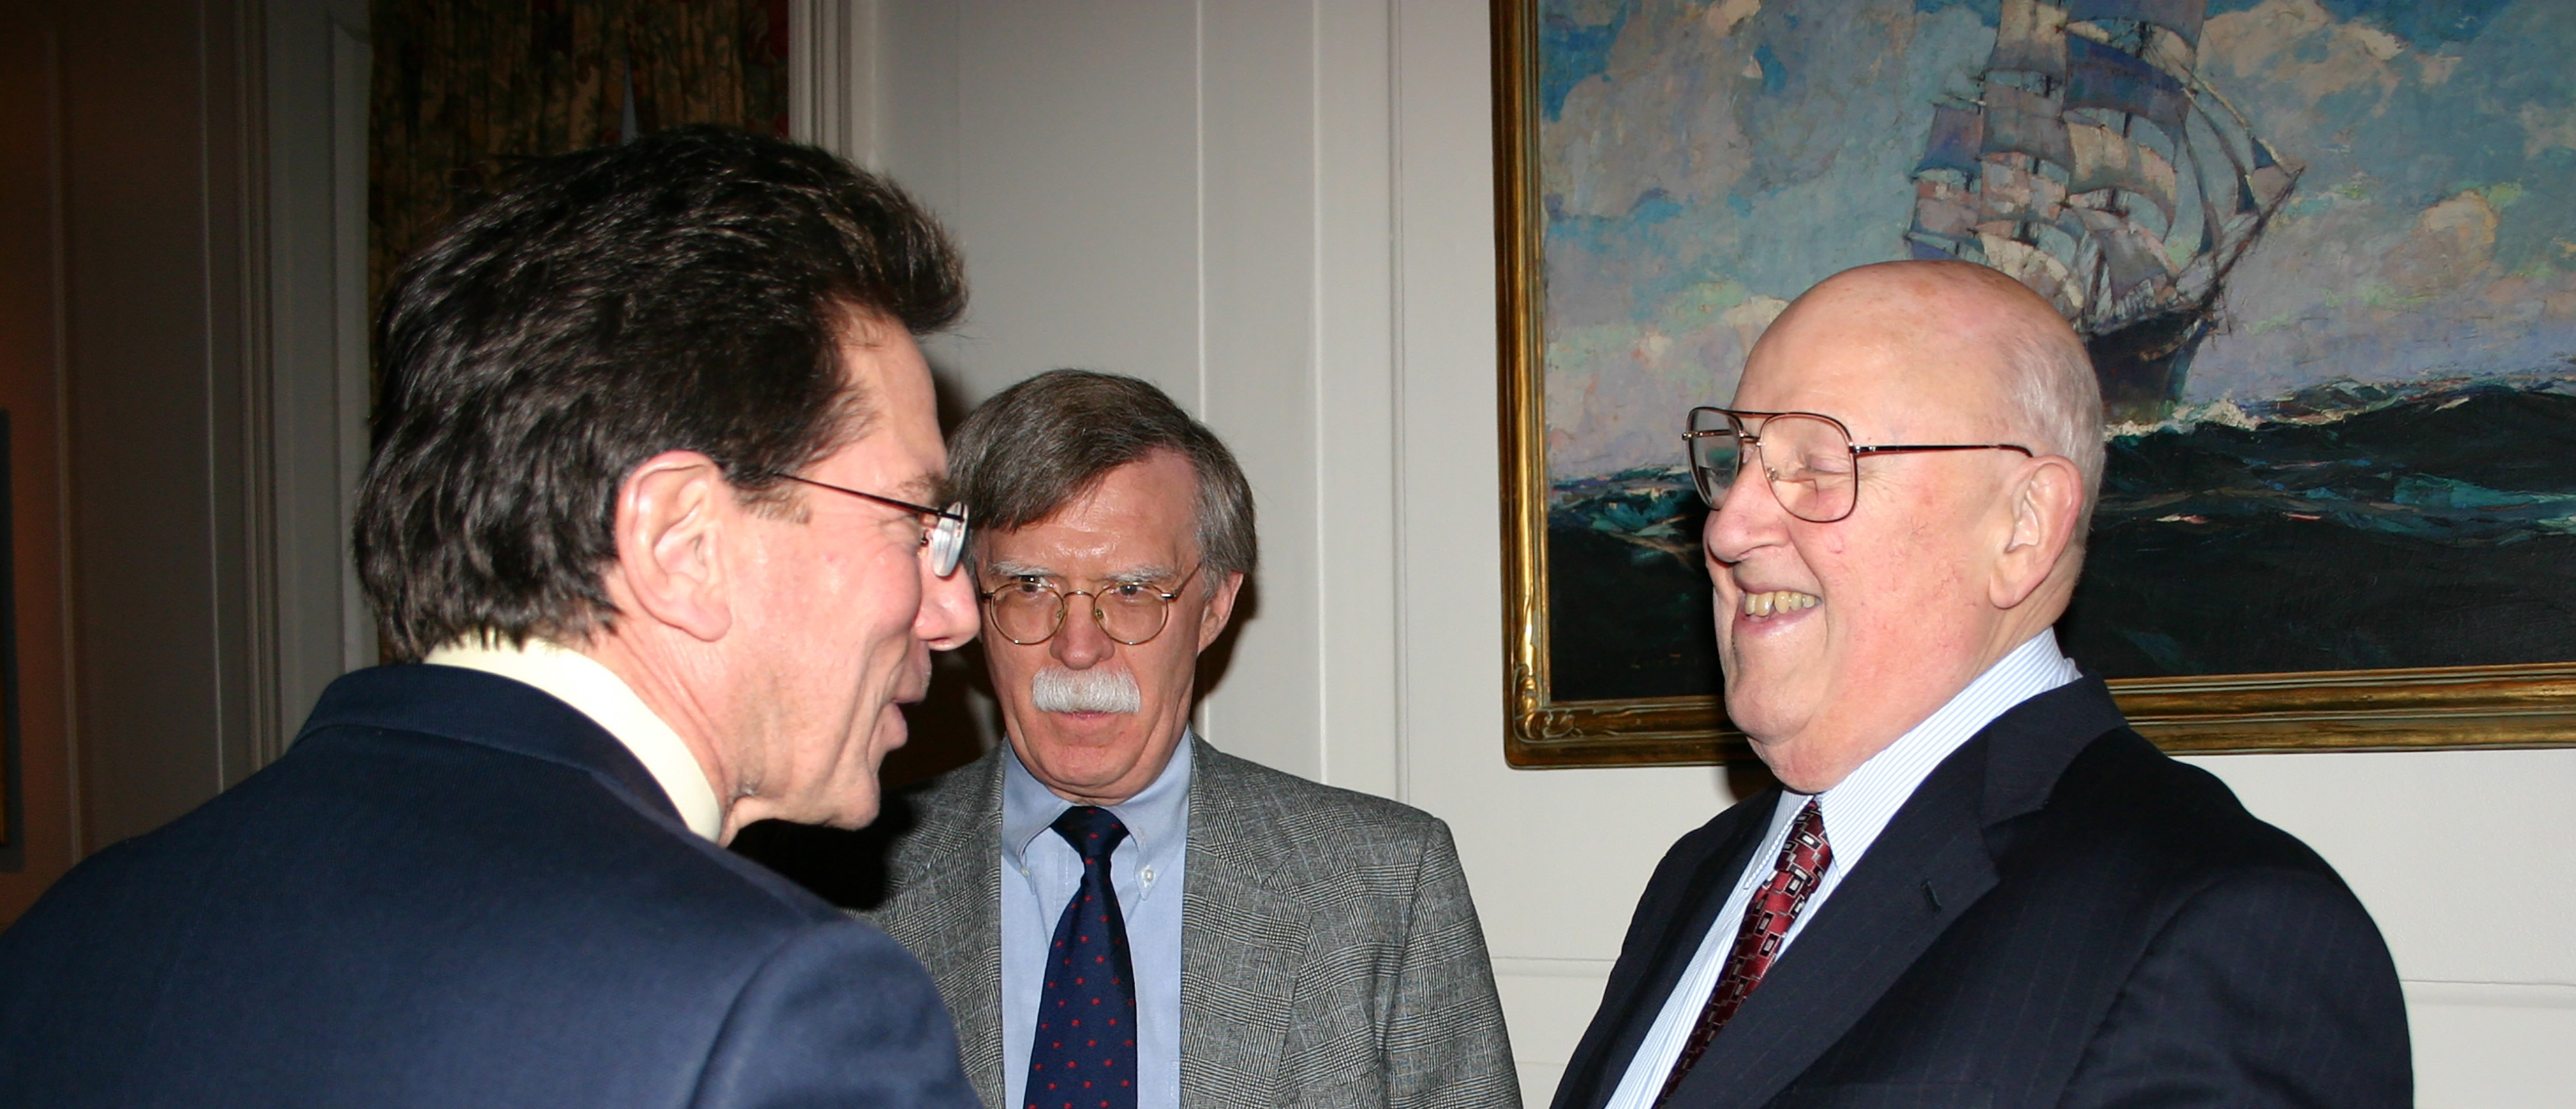 YLS Prof. Anthony Kronman '75, Ambassador John Bolton '74, and the Hon. Ralph Winter '60